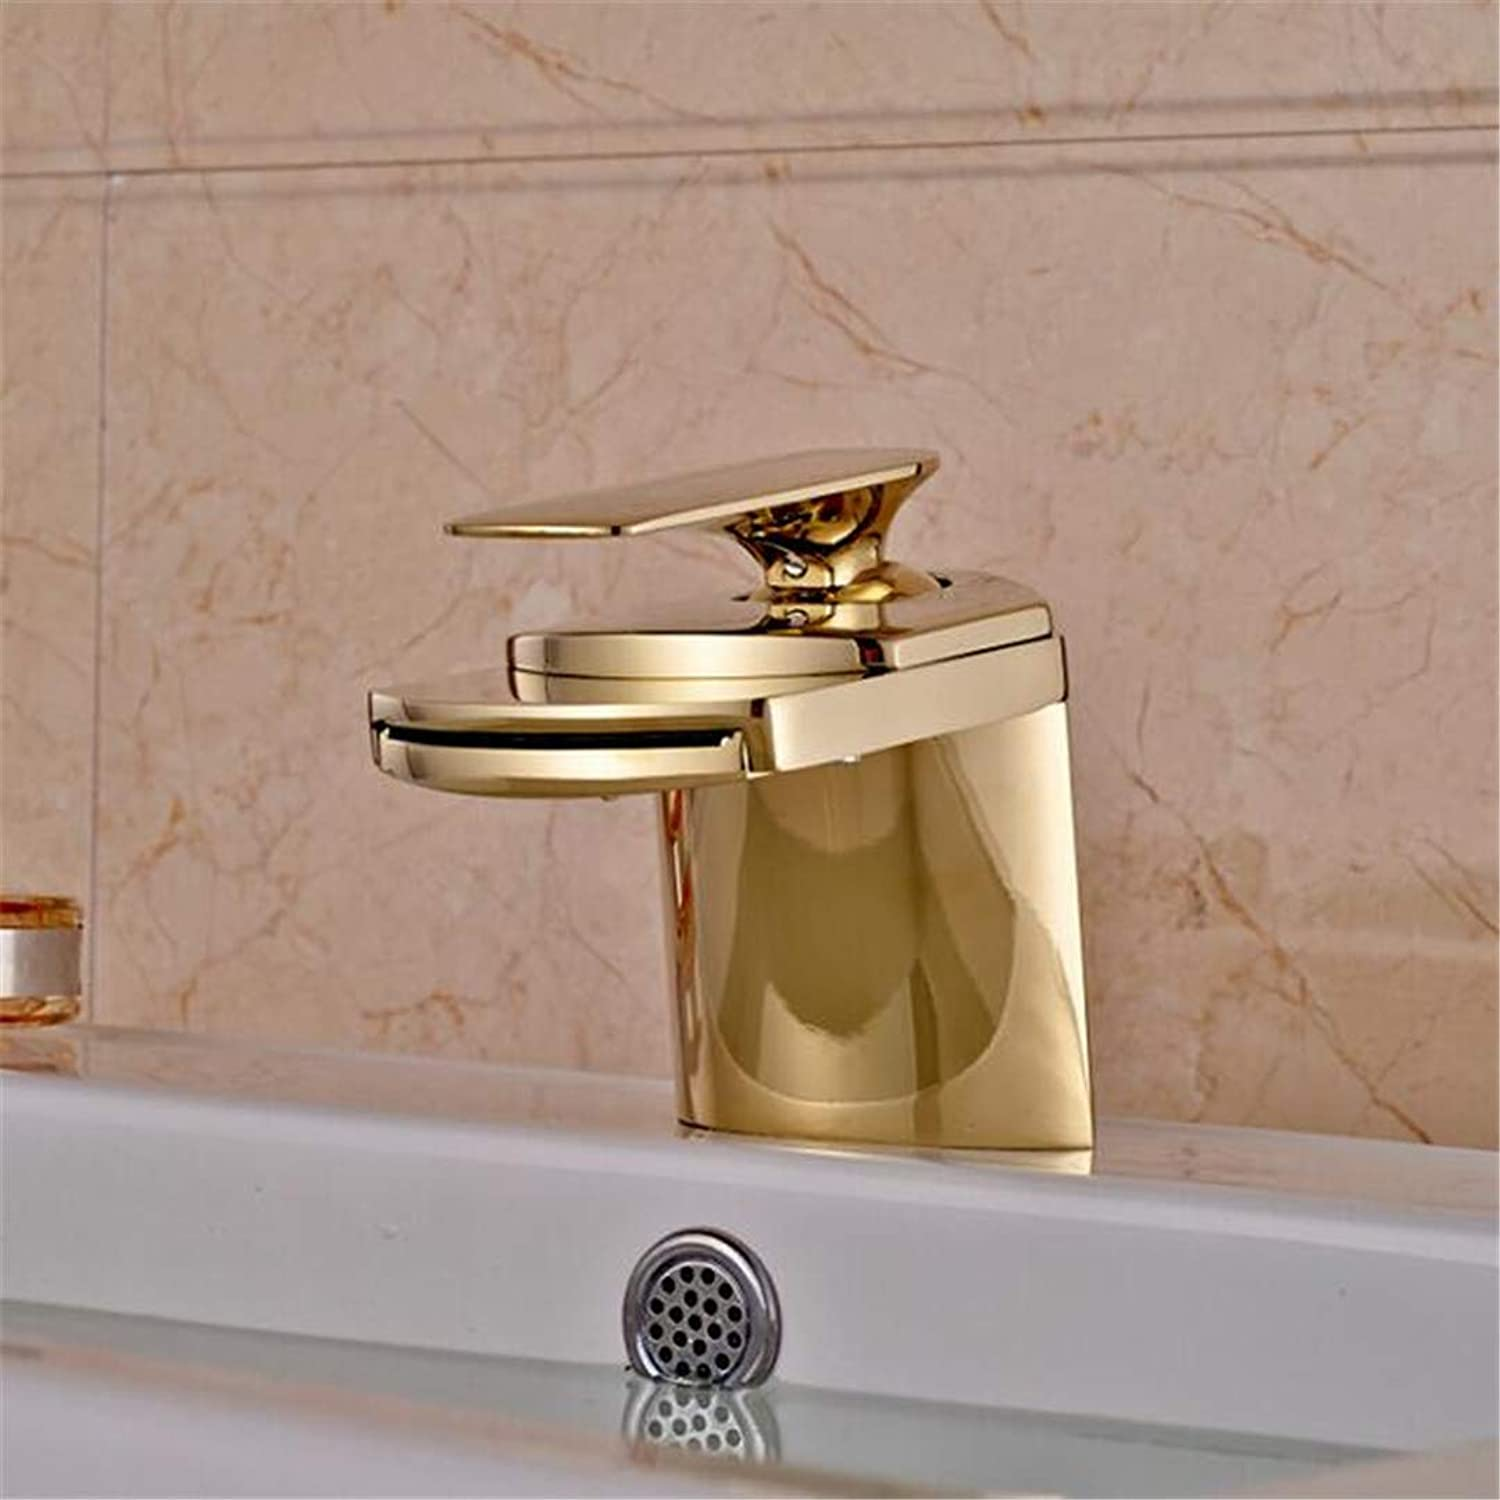 Basin Faucet Bathroom Sink Tap Waterfall Spout Basin Vessel Sink Faucet Deck Mount Brass Hot Cold Mixer Tap for Bathroom